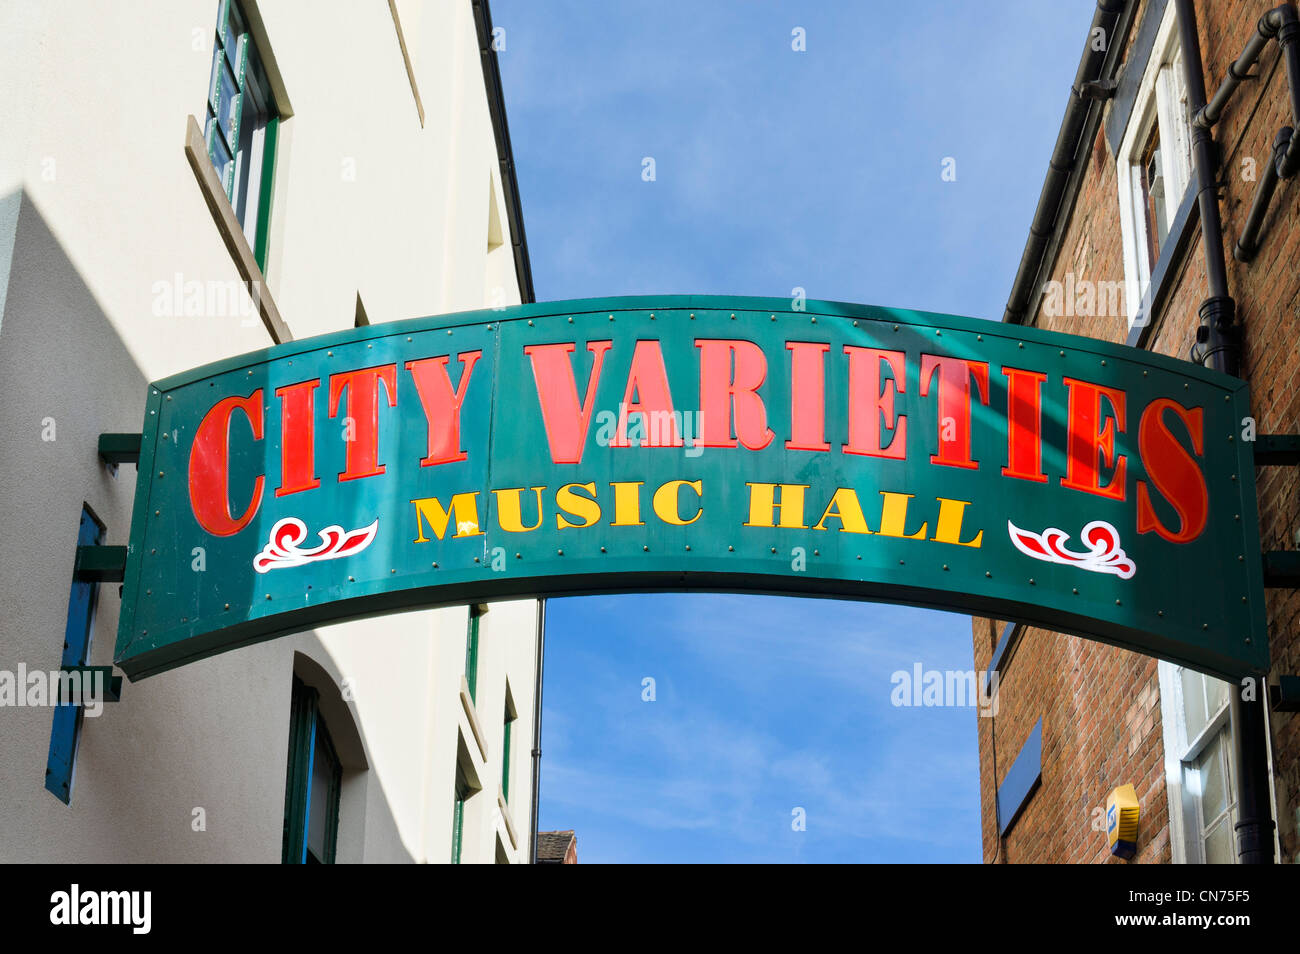 Leeds City Varieties Music Hall, Swan Street, just off Briggate, Leeds, West Yorkshire, England - Stock Image